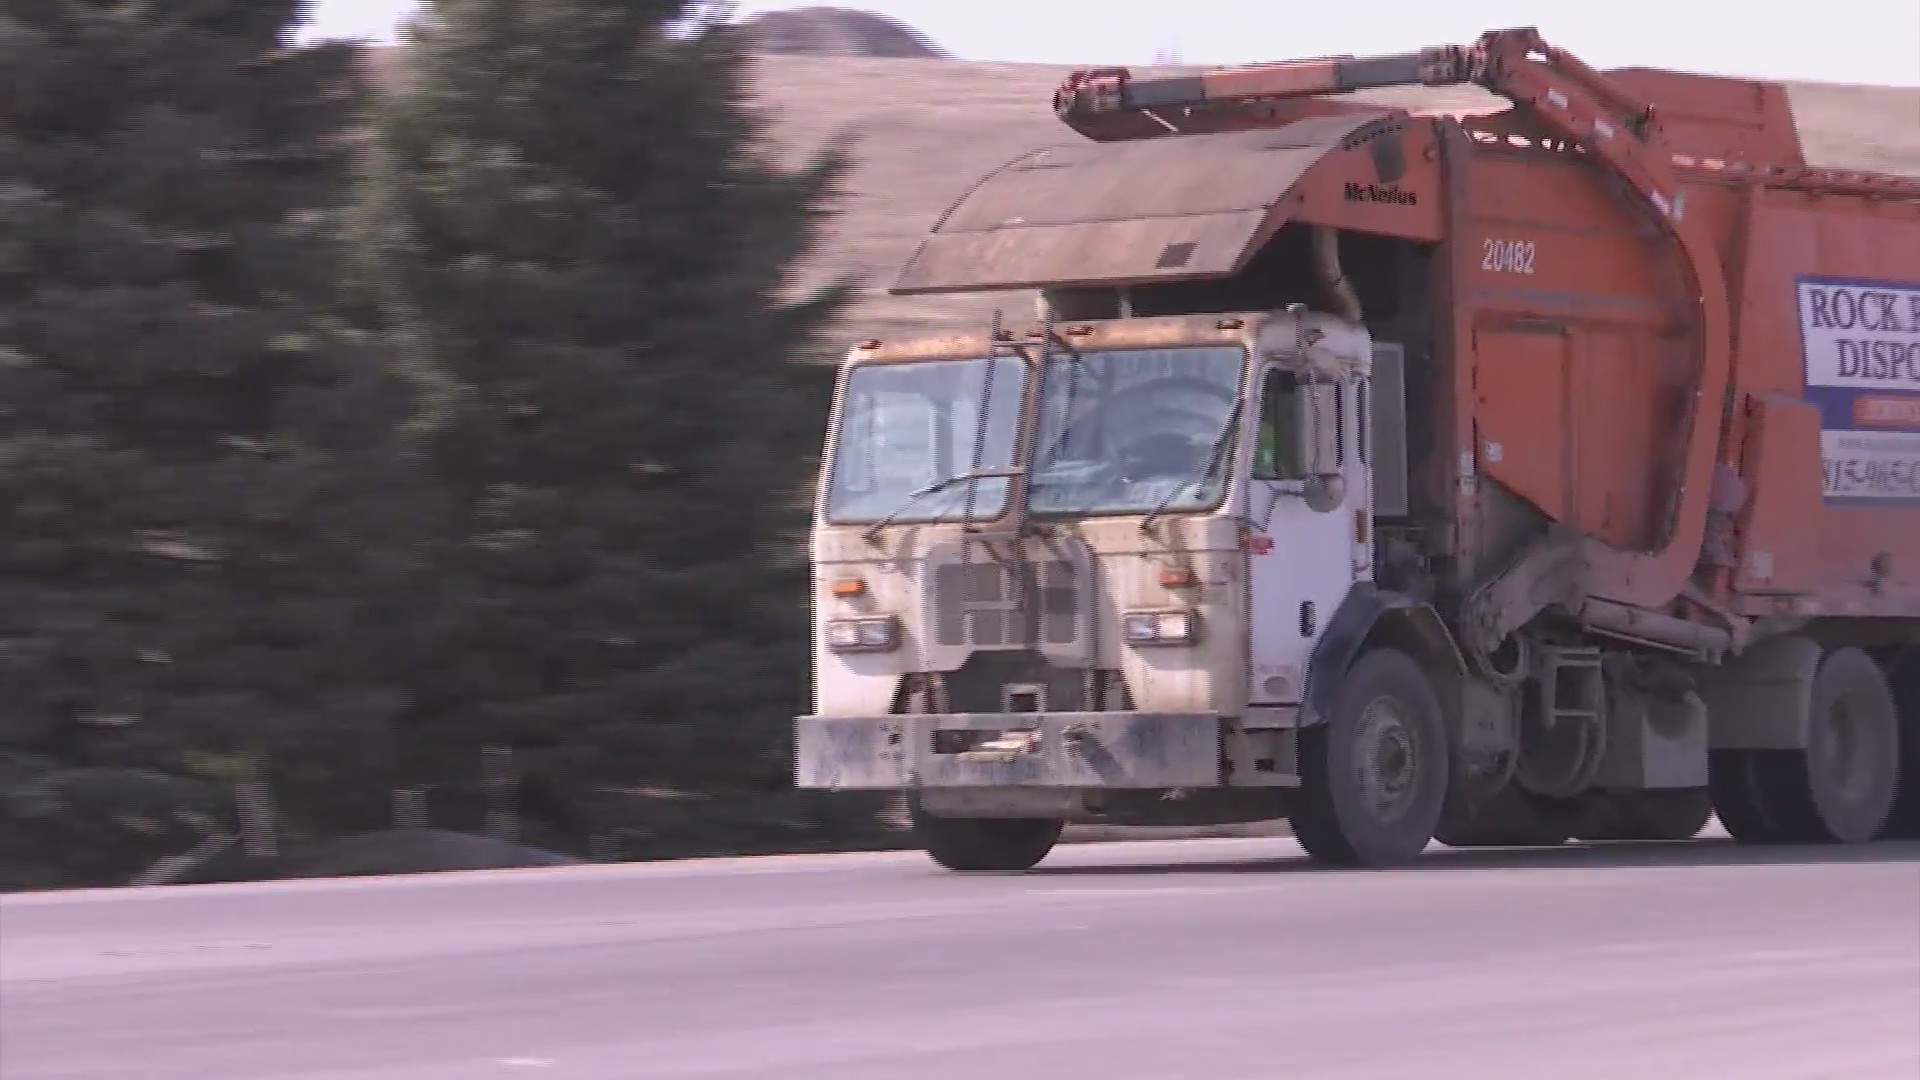 Many stateline roads littered with trash from passing garbage trucks